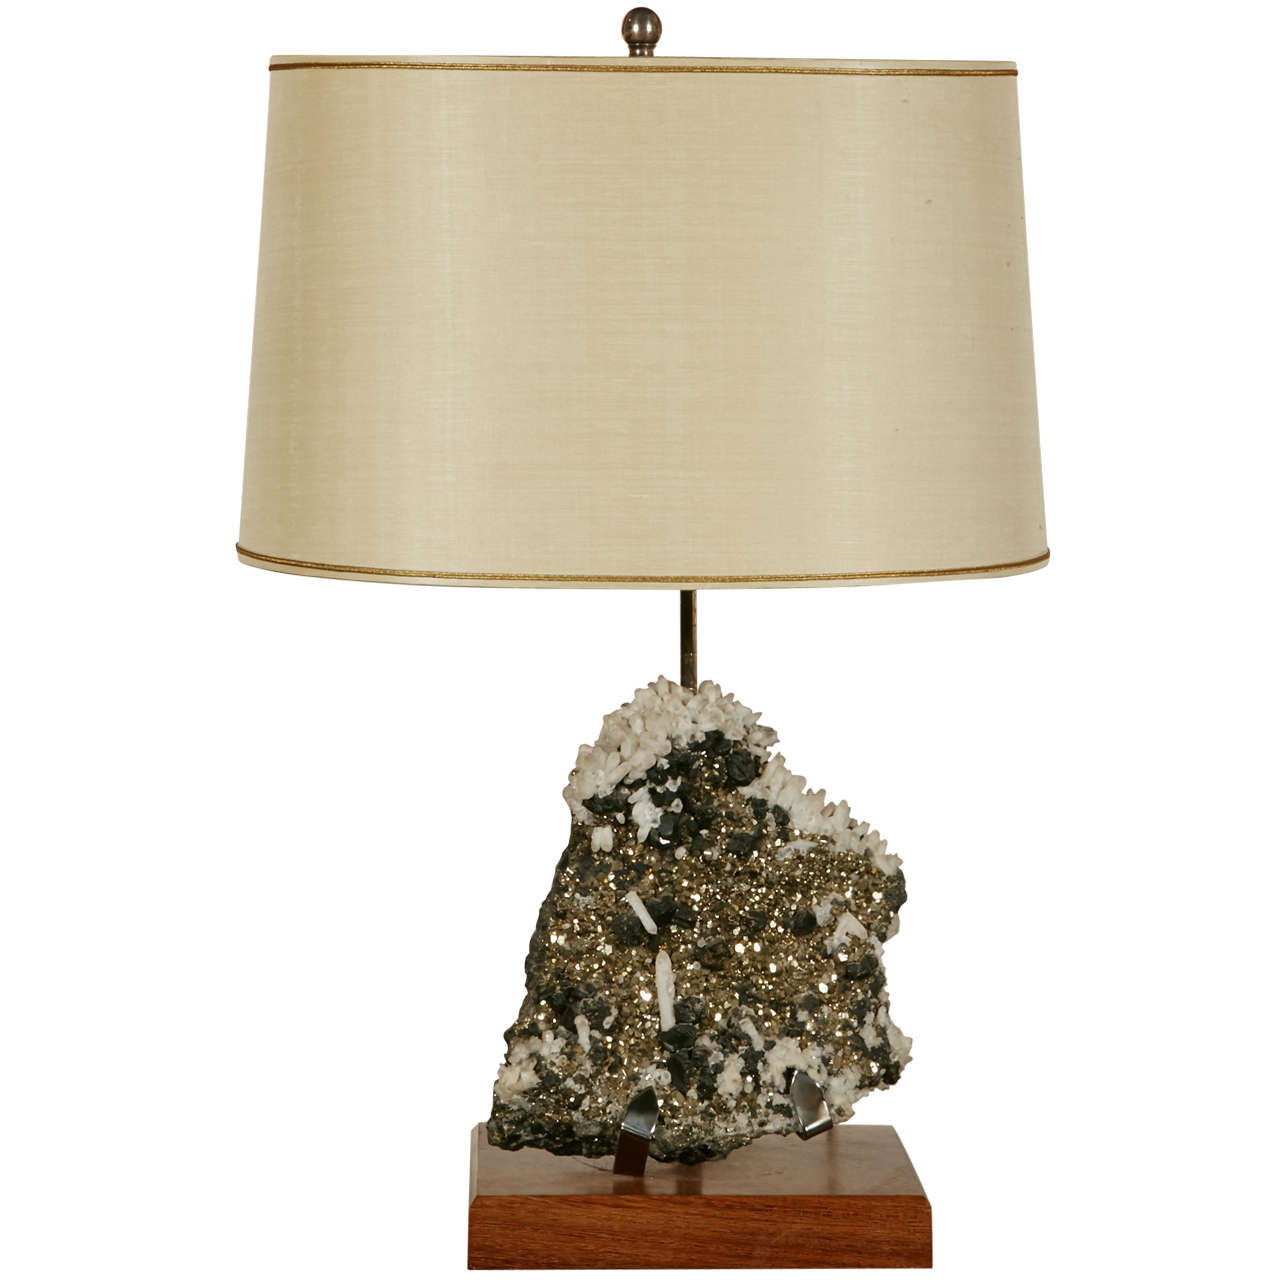 Elegant Table Lamp With Pyrite In The Manner Of Willy Daro